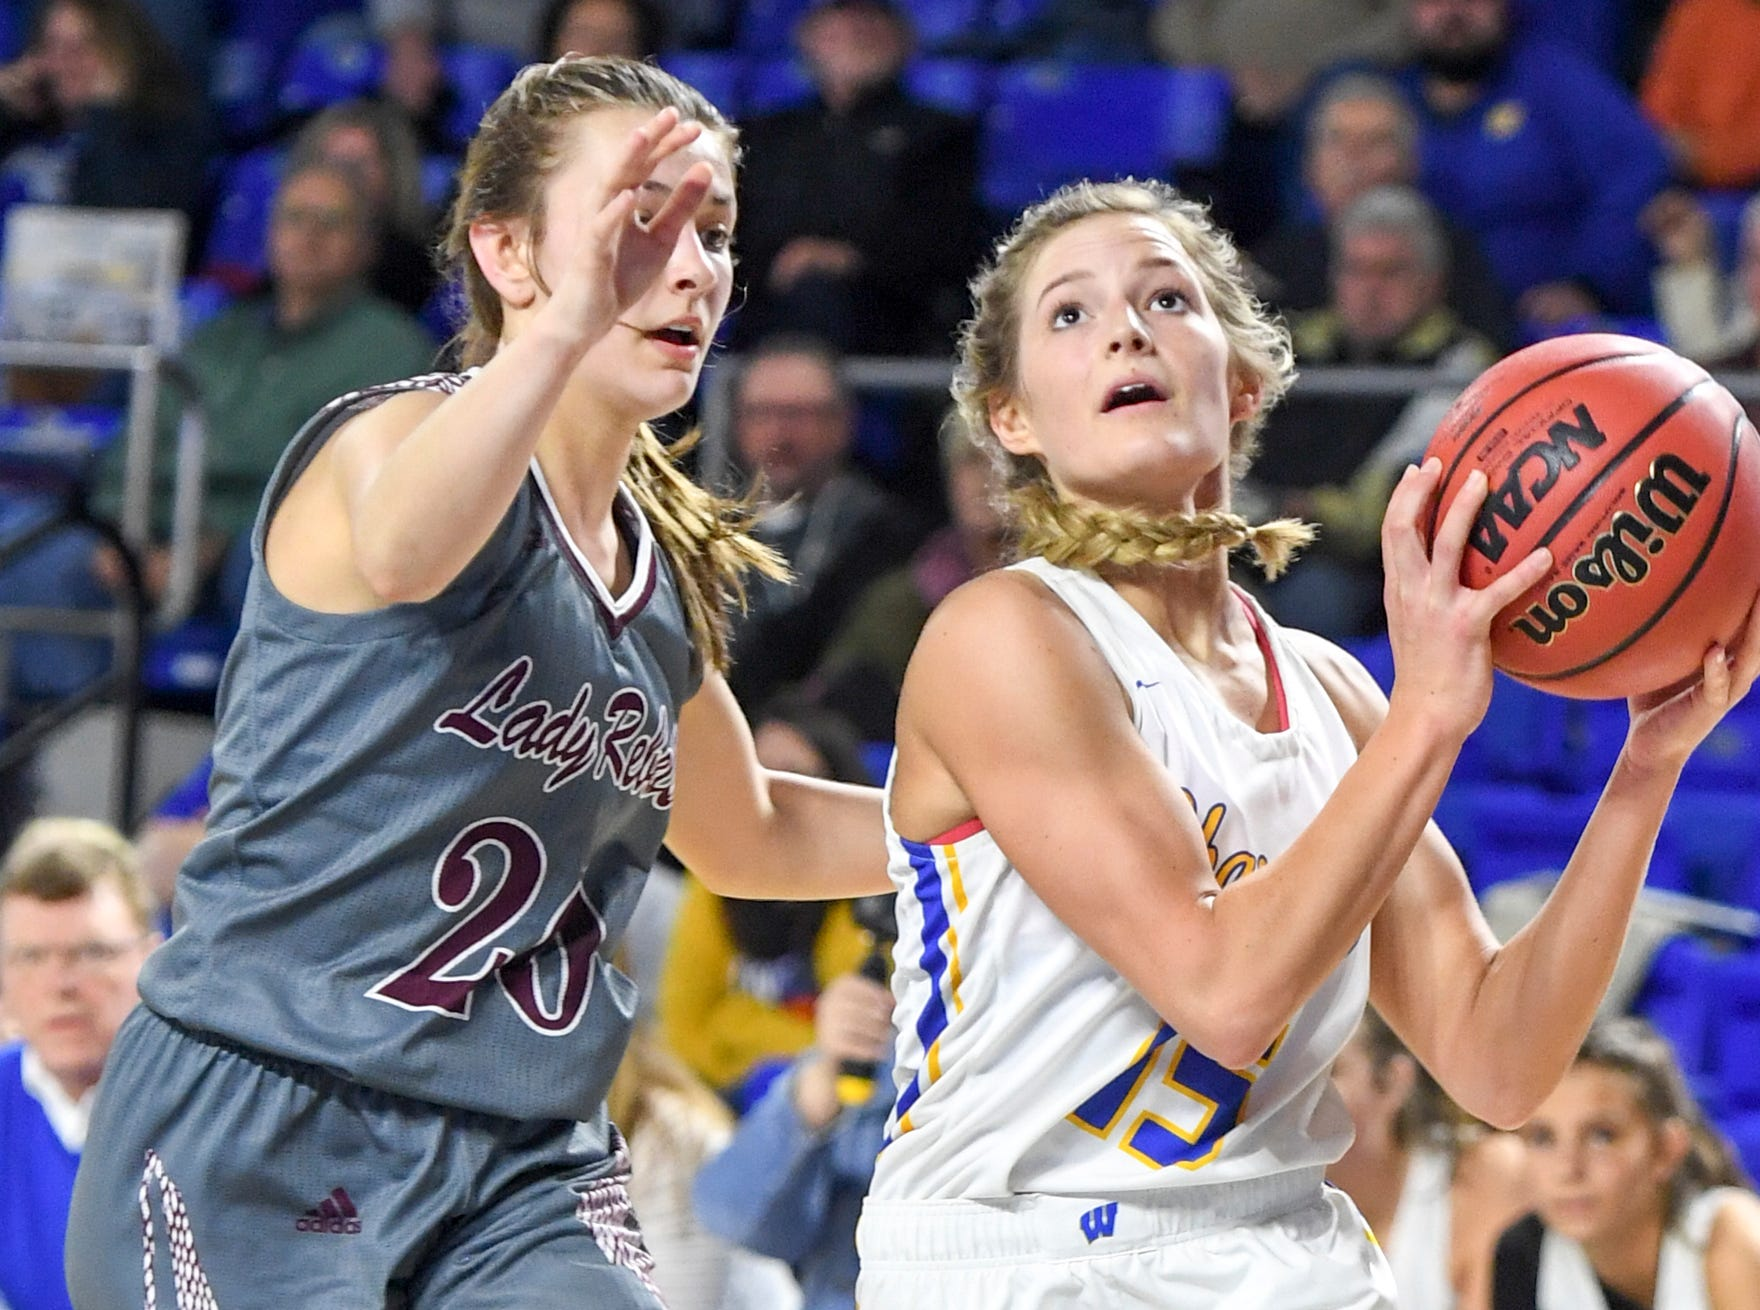 Westview's Alex Callins (15) goes up for a shot while guarded by South Greene's Kiley Collins (20) during their Class AA quarterfianl game, Wednesday, March 6, 2019, in Murfreesboro. Westview defeated South Greene, 54-42.